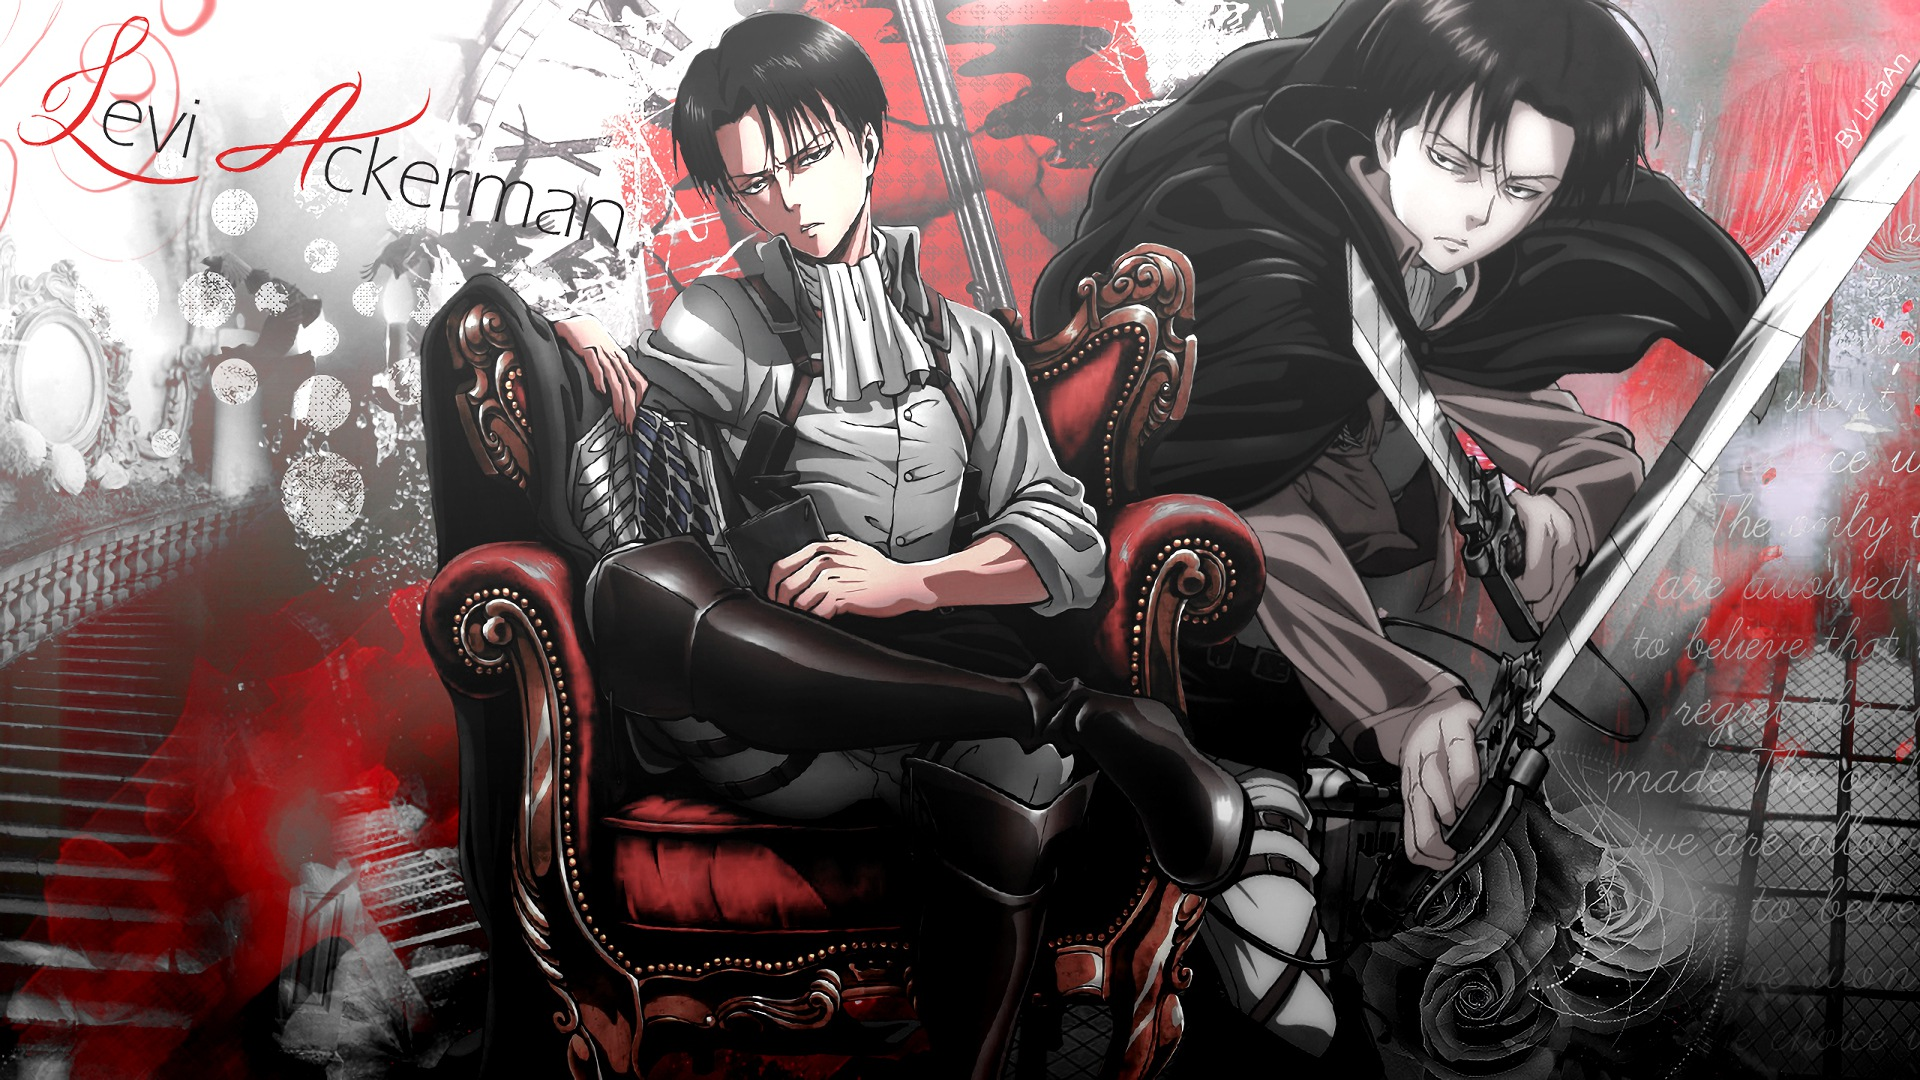 Attack On Titan Levi Ackerman Wallpapers Posted By Zoey Mercado